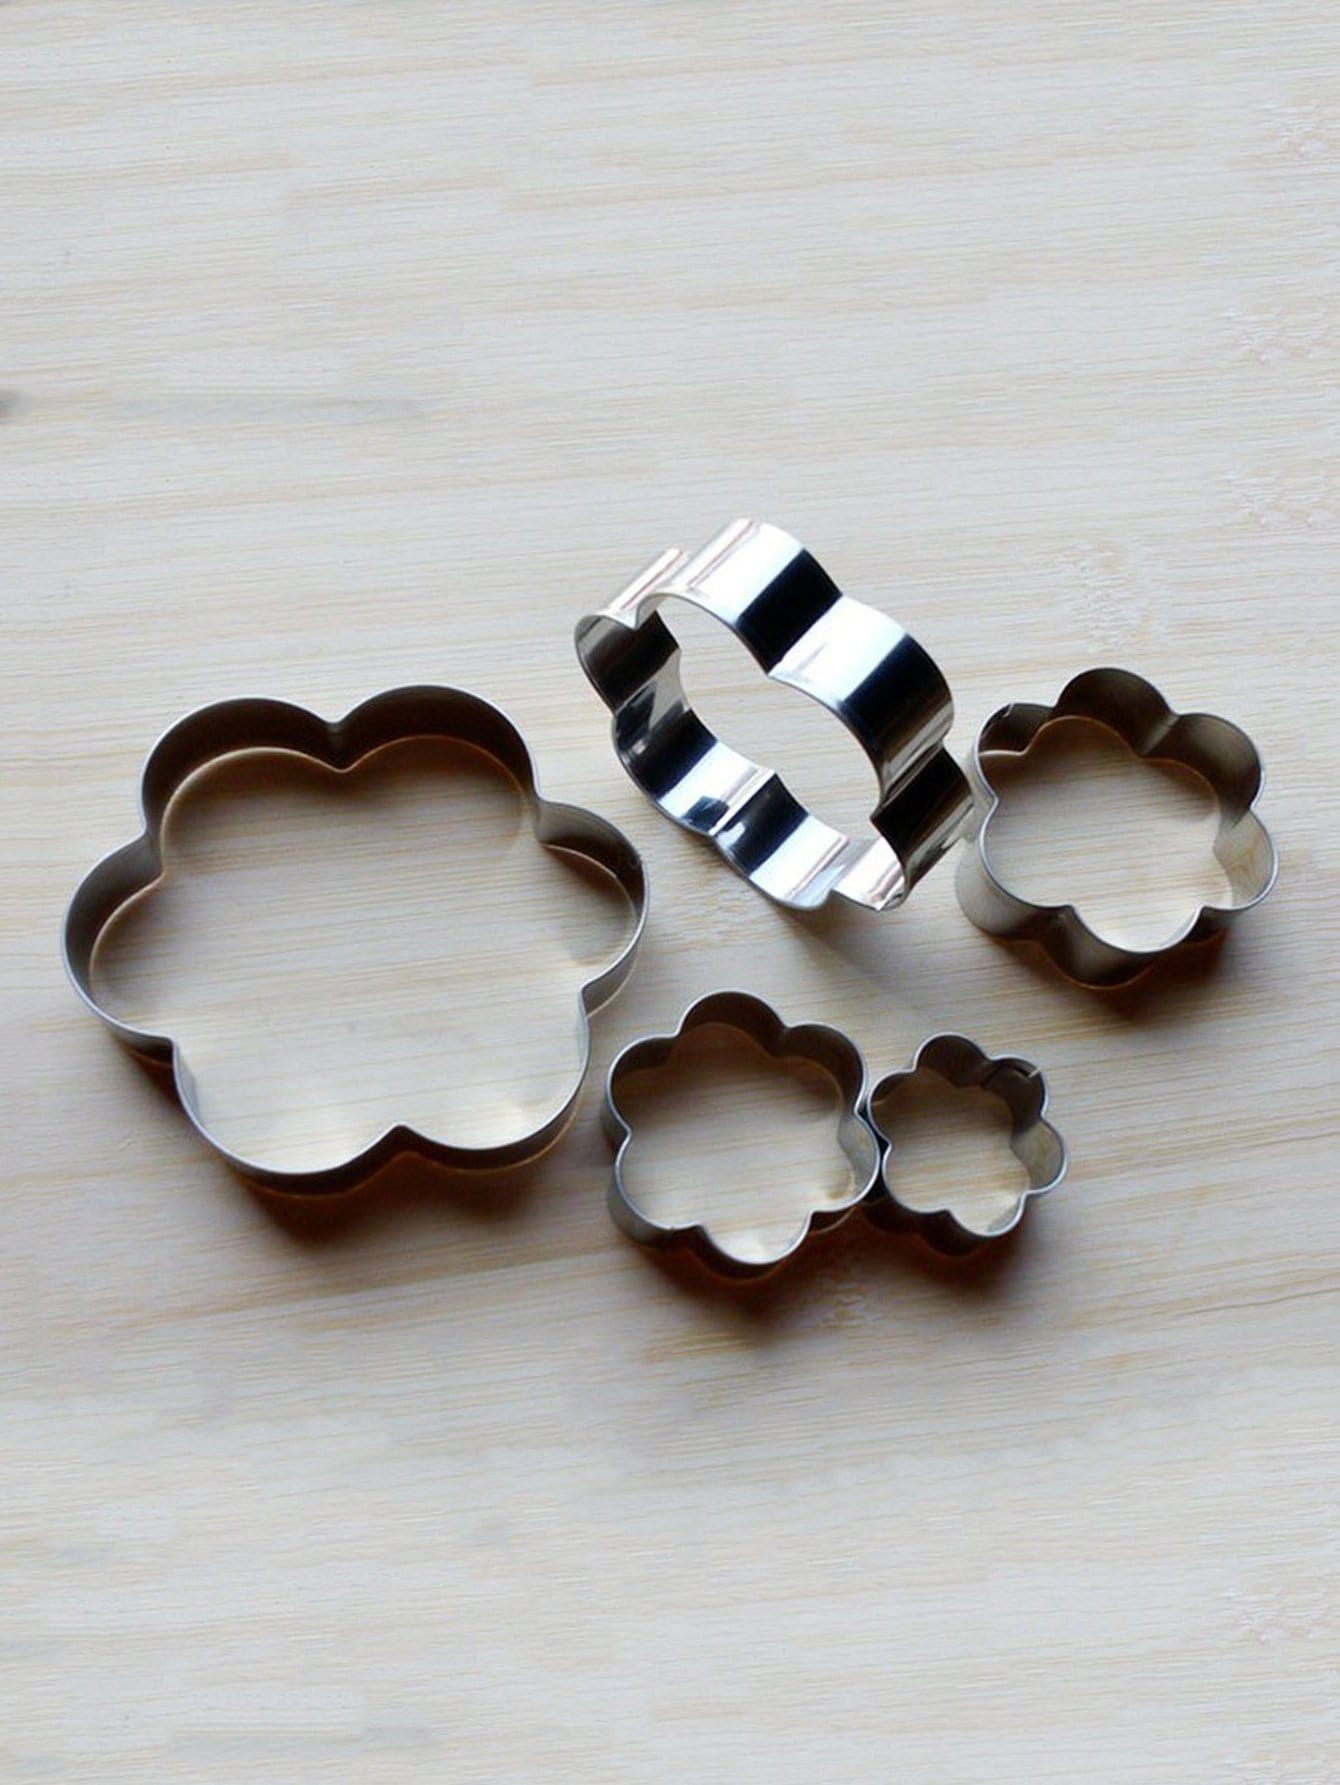 Stainless Steel Flower Cookie Cutter 5pcs stainless steel tree cookie cutter